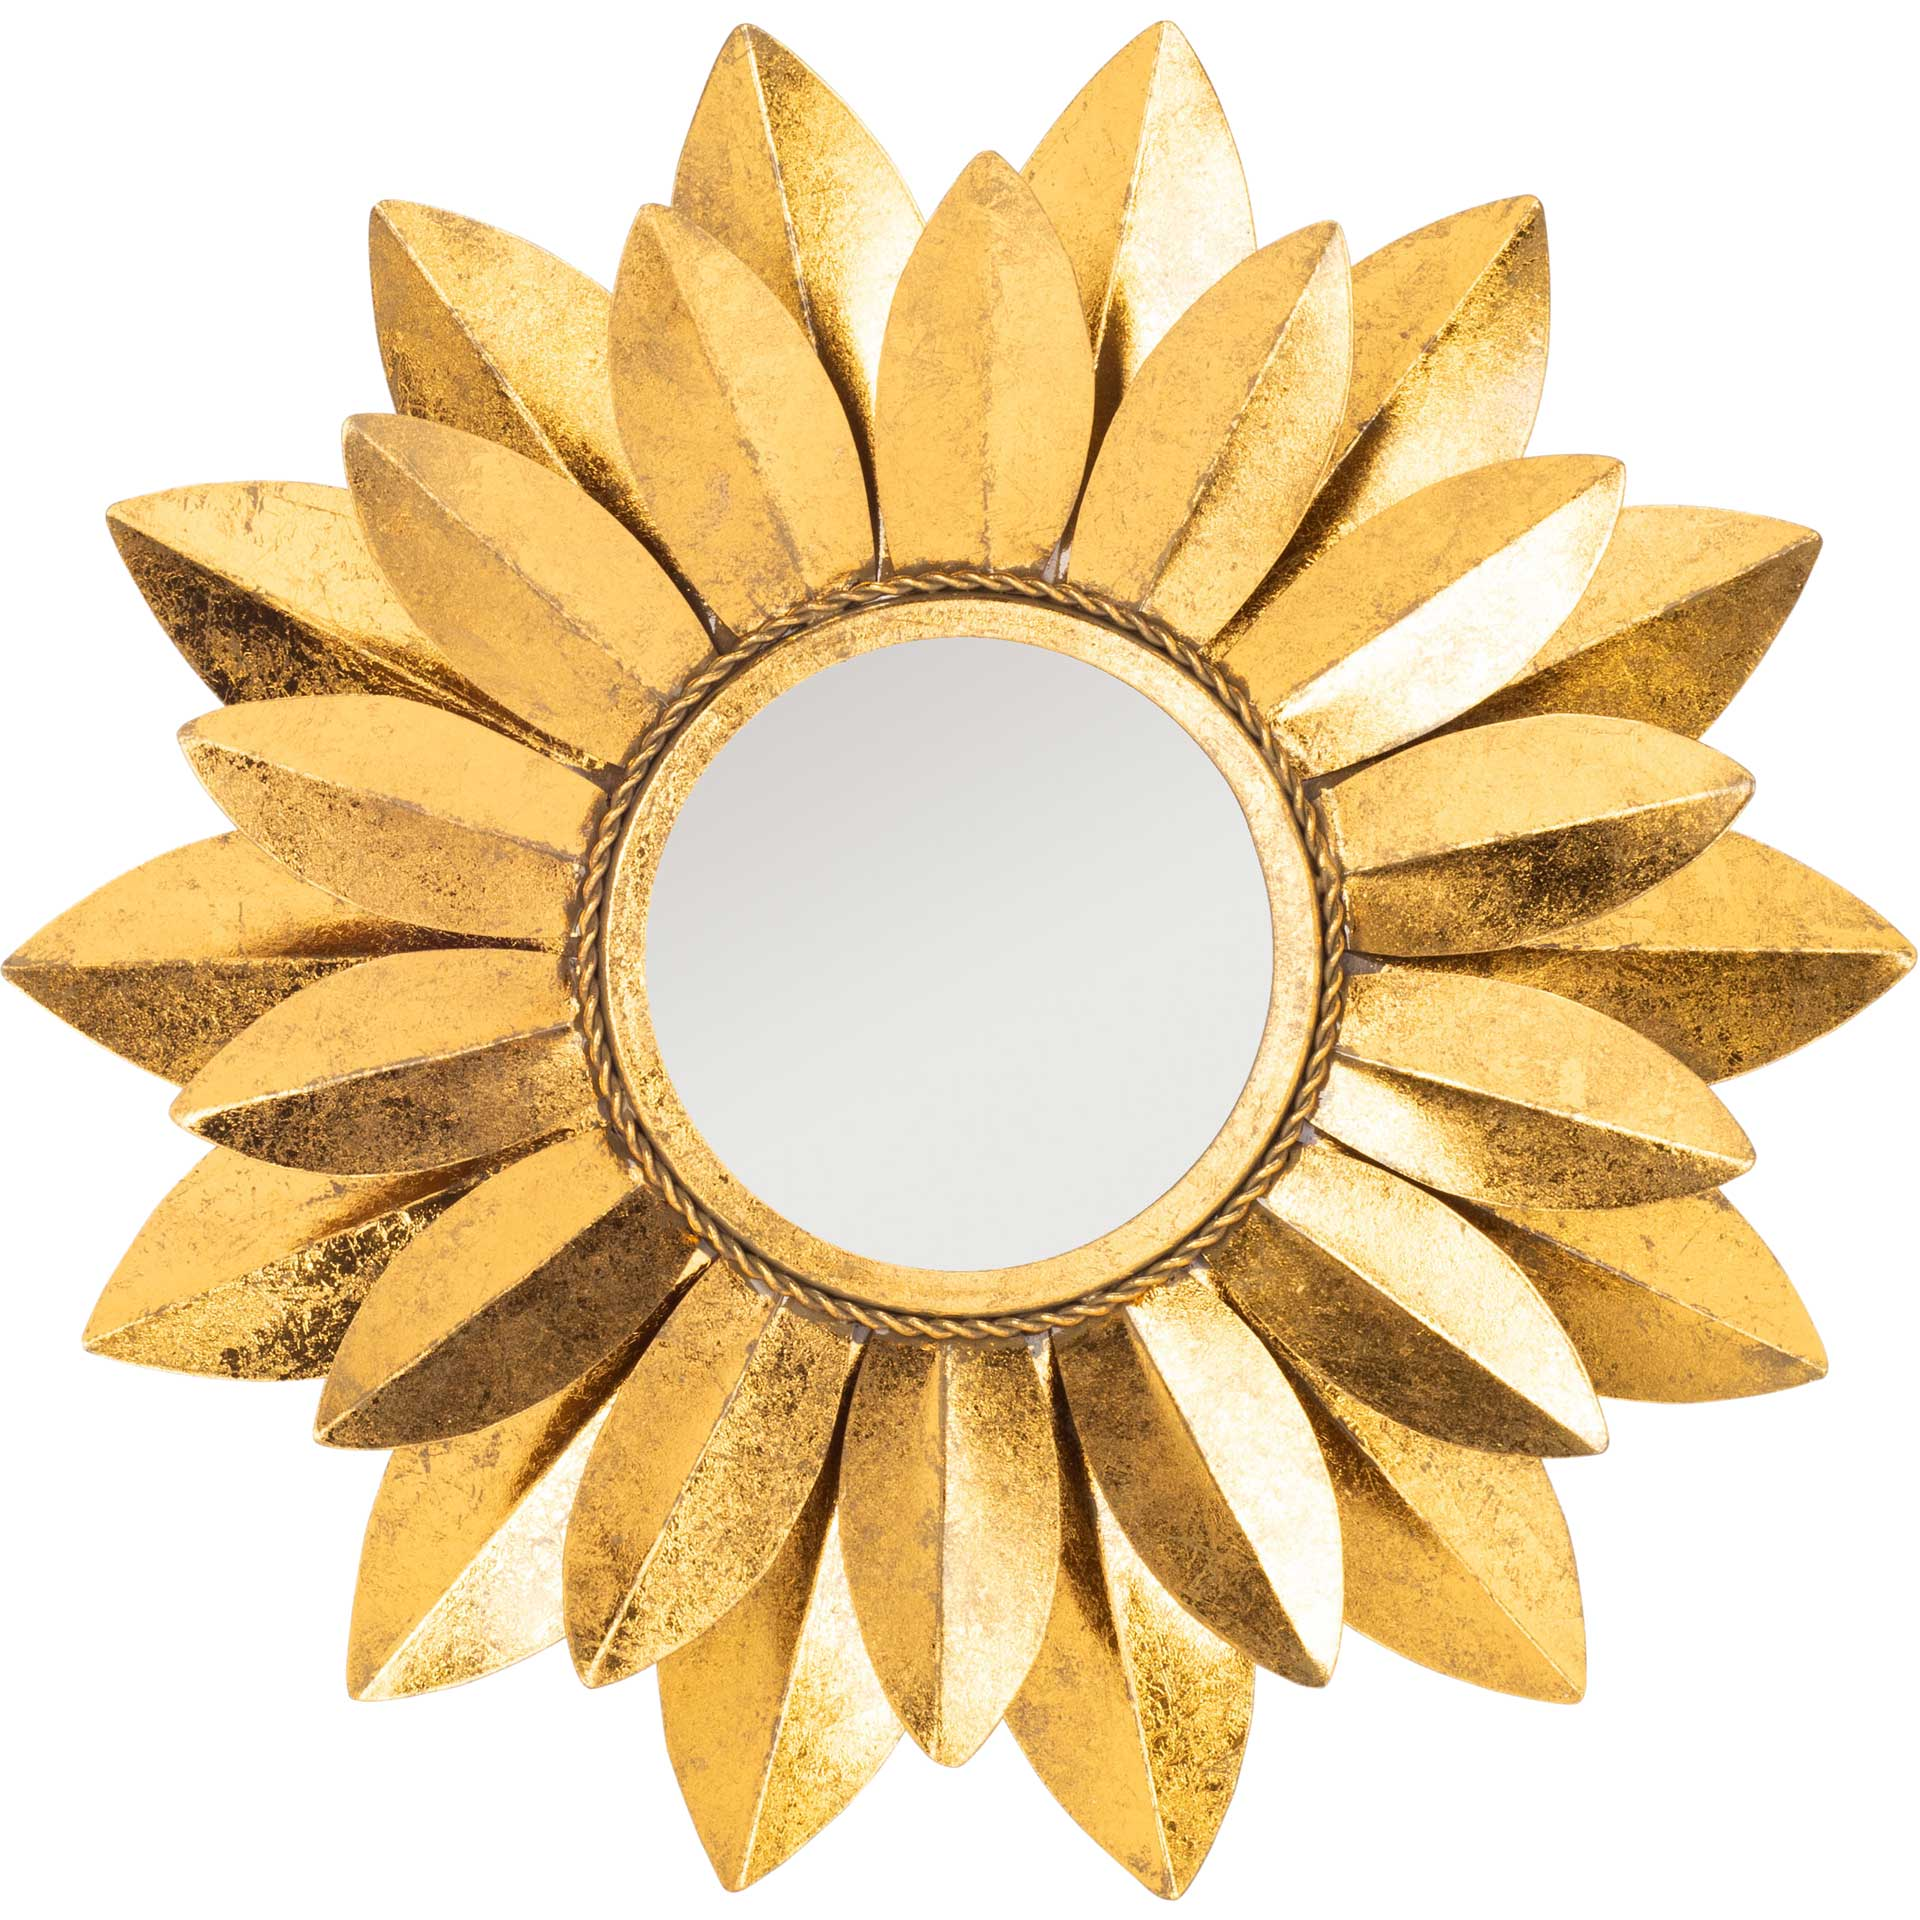 Larry Mirror Gold Foil